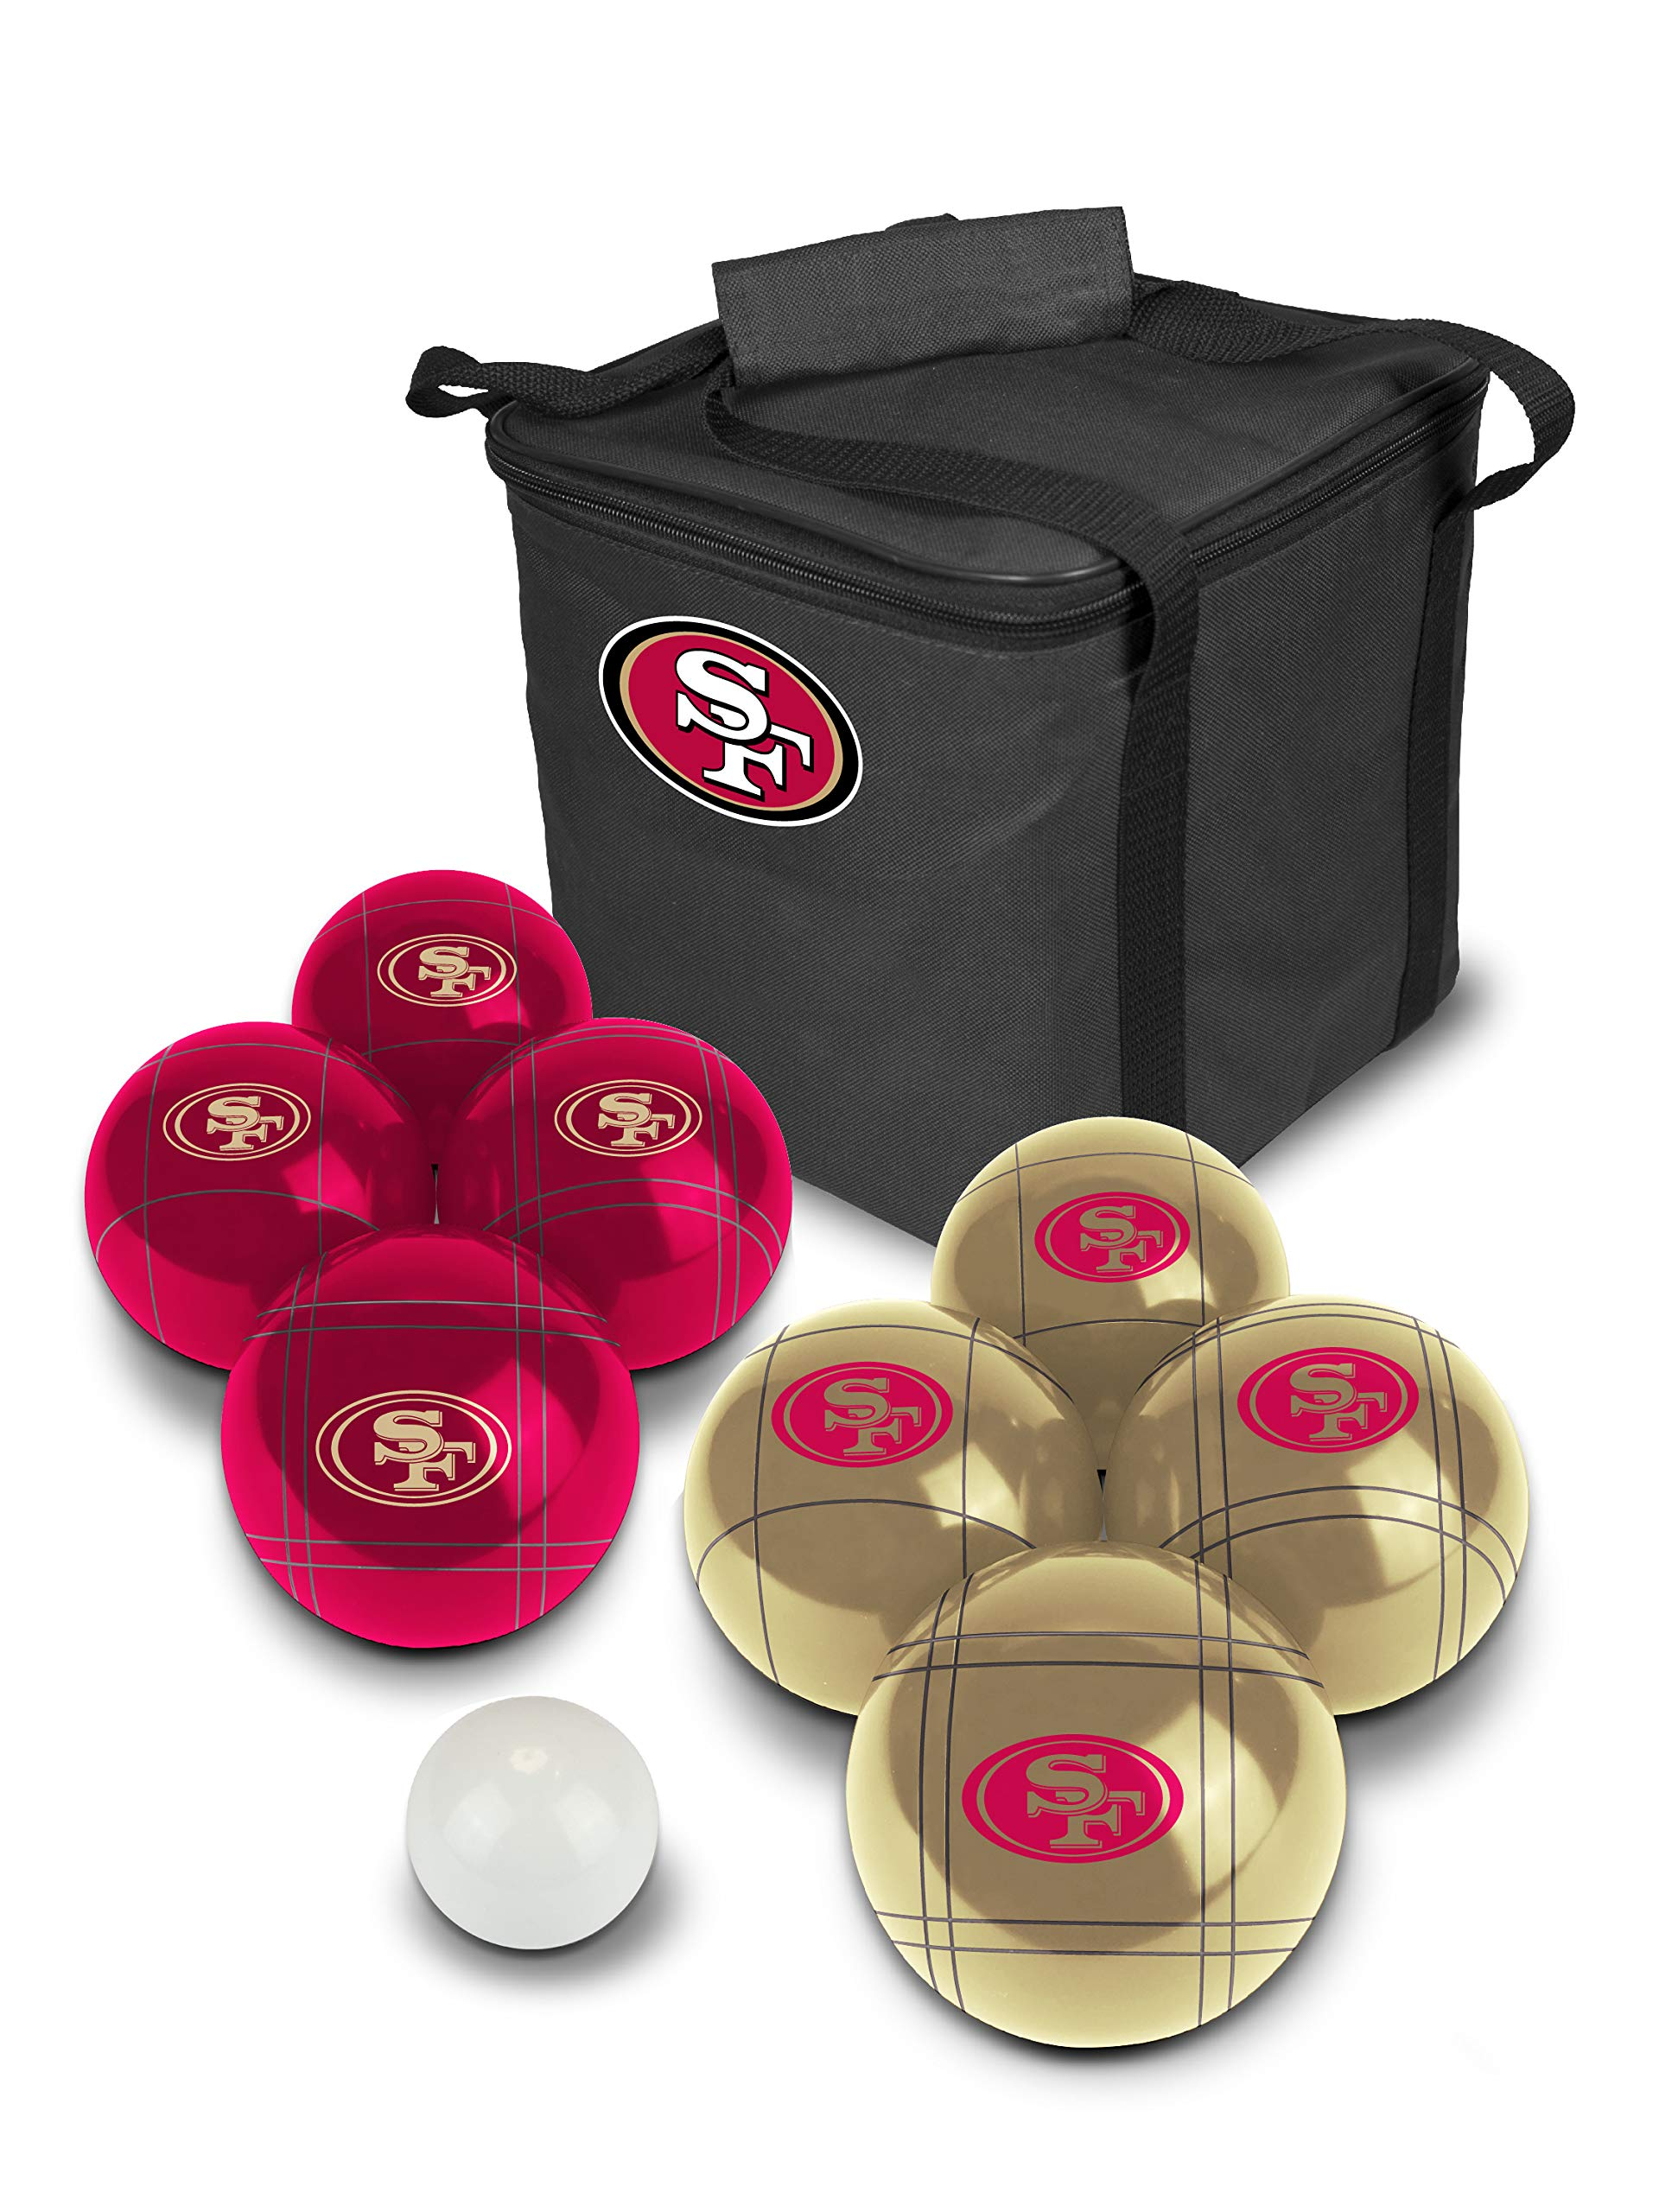 PROLINE NFL San Francisco 49ers Bocce Ball Set by PROLINE